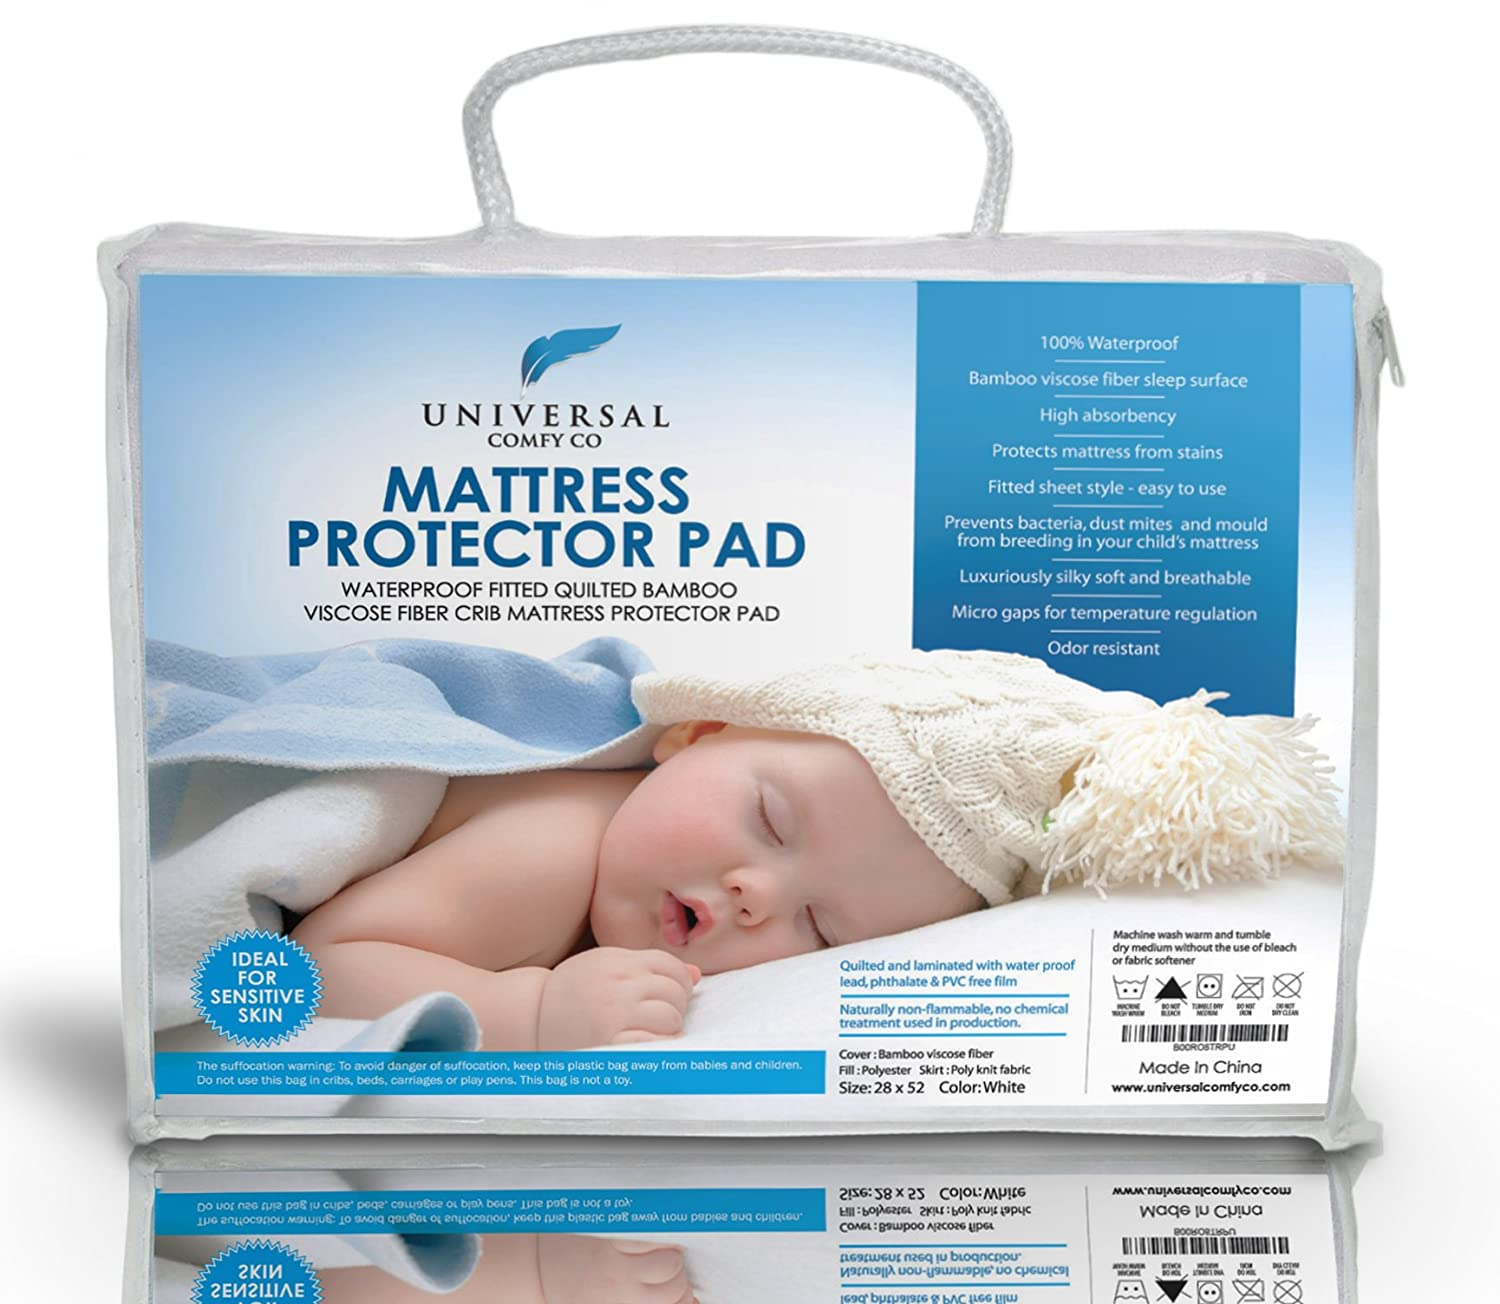 #1 Best Crib Mattress Protector Pad From Bamboo Rayon Fiber ✮ Waterproof Fitted Quilted Comes with FREE BOOK ✮ High Absorbency and Stain Protection Baby Cover Made for Superior Comfort ✮ Prevents Bacteria, Dust Mites an